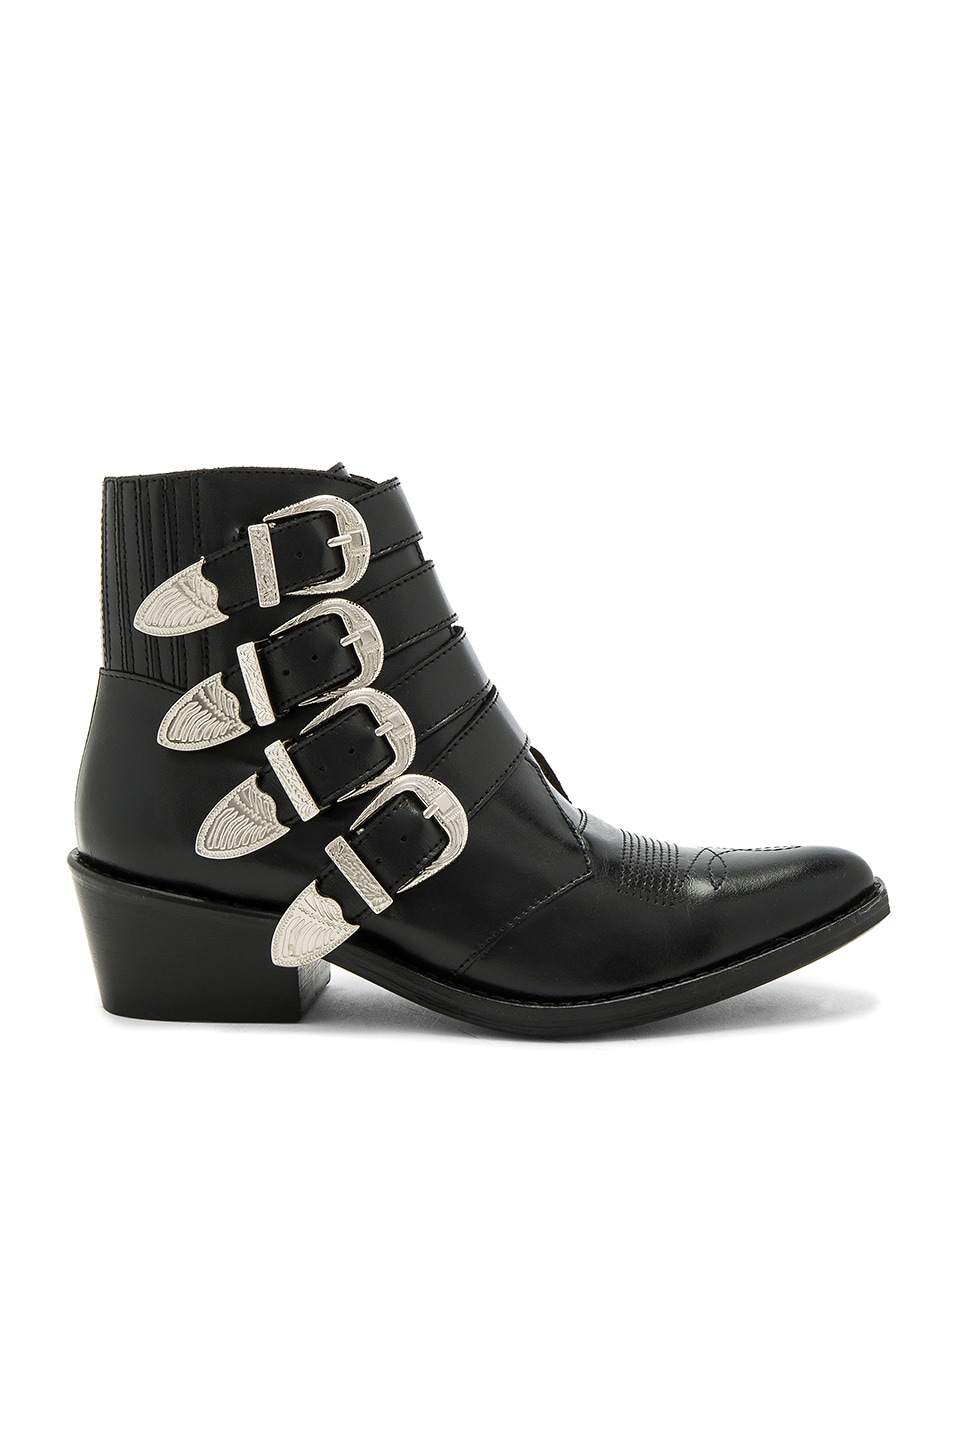 TOGA PULLA Buckled Leather Bootie in Black Polido